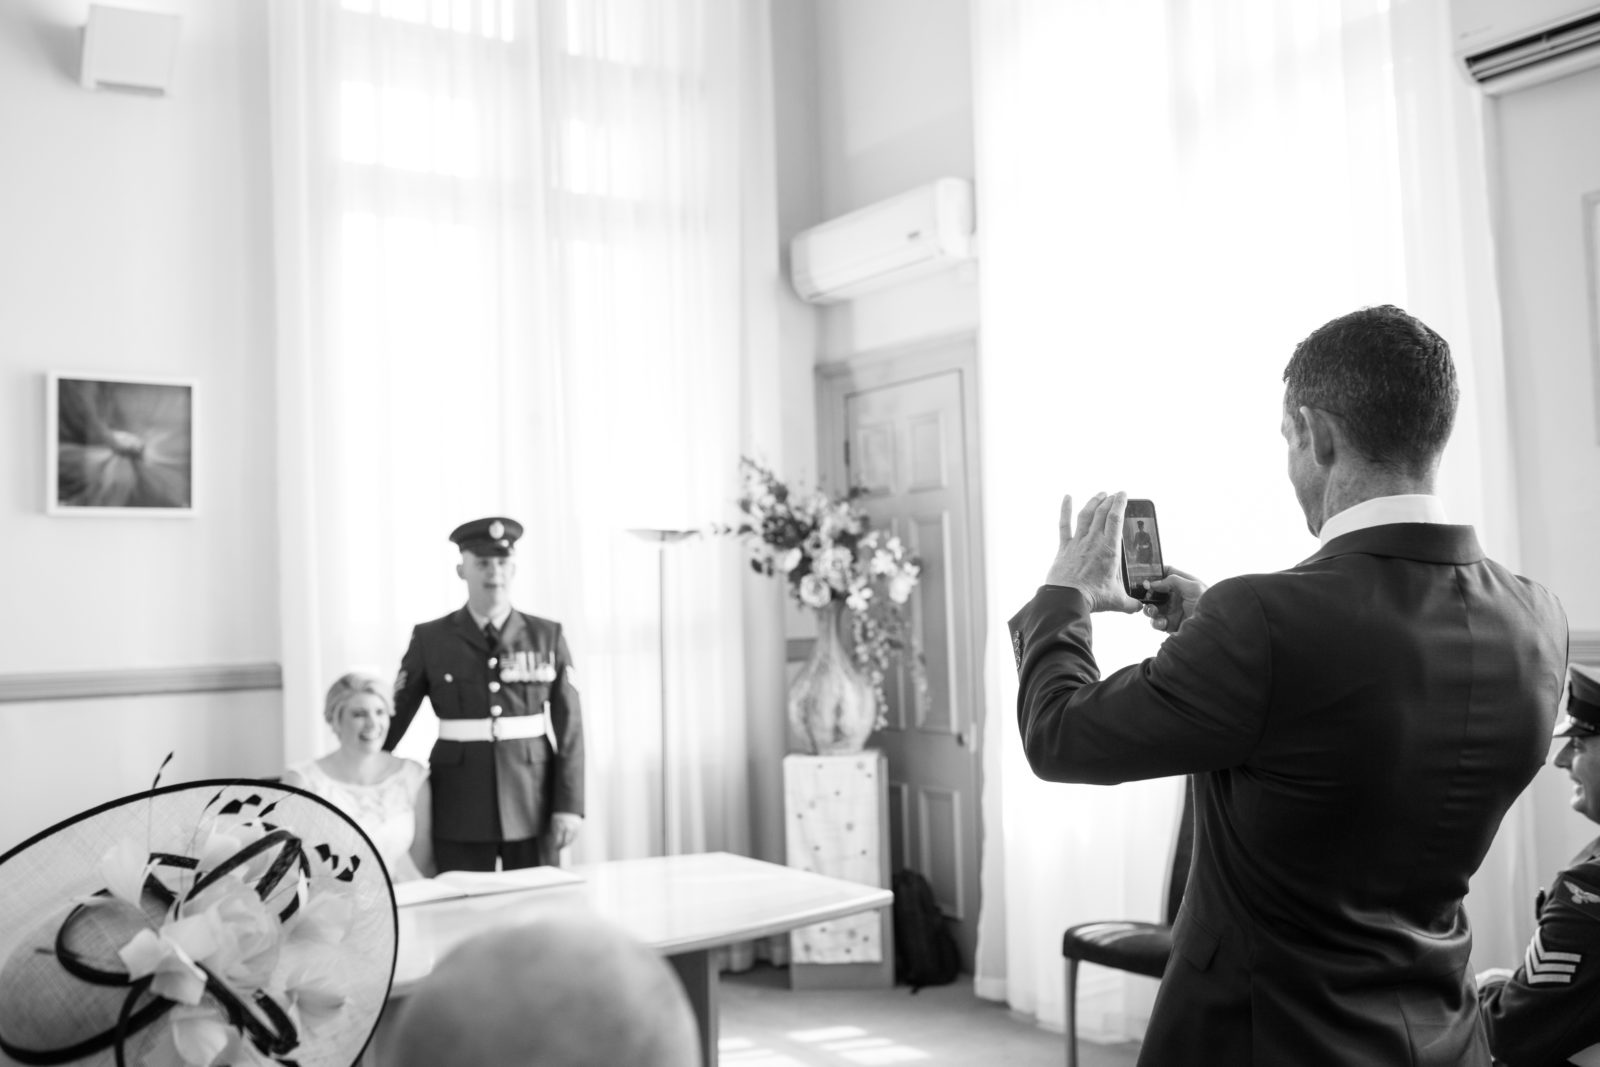 Guests with  cameras at weddings.